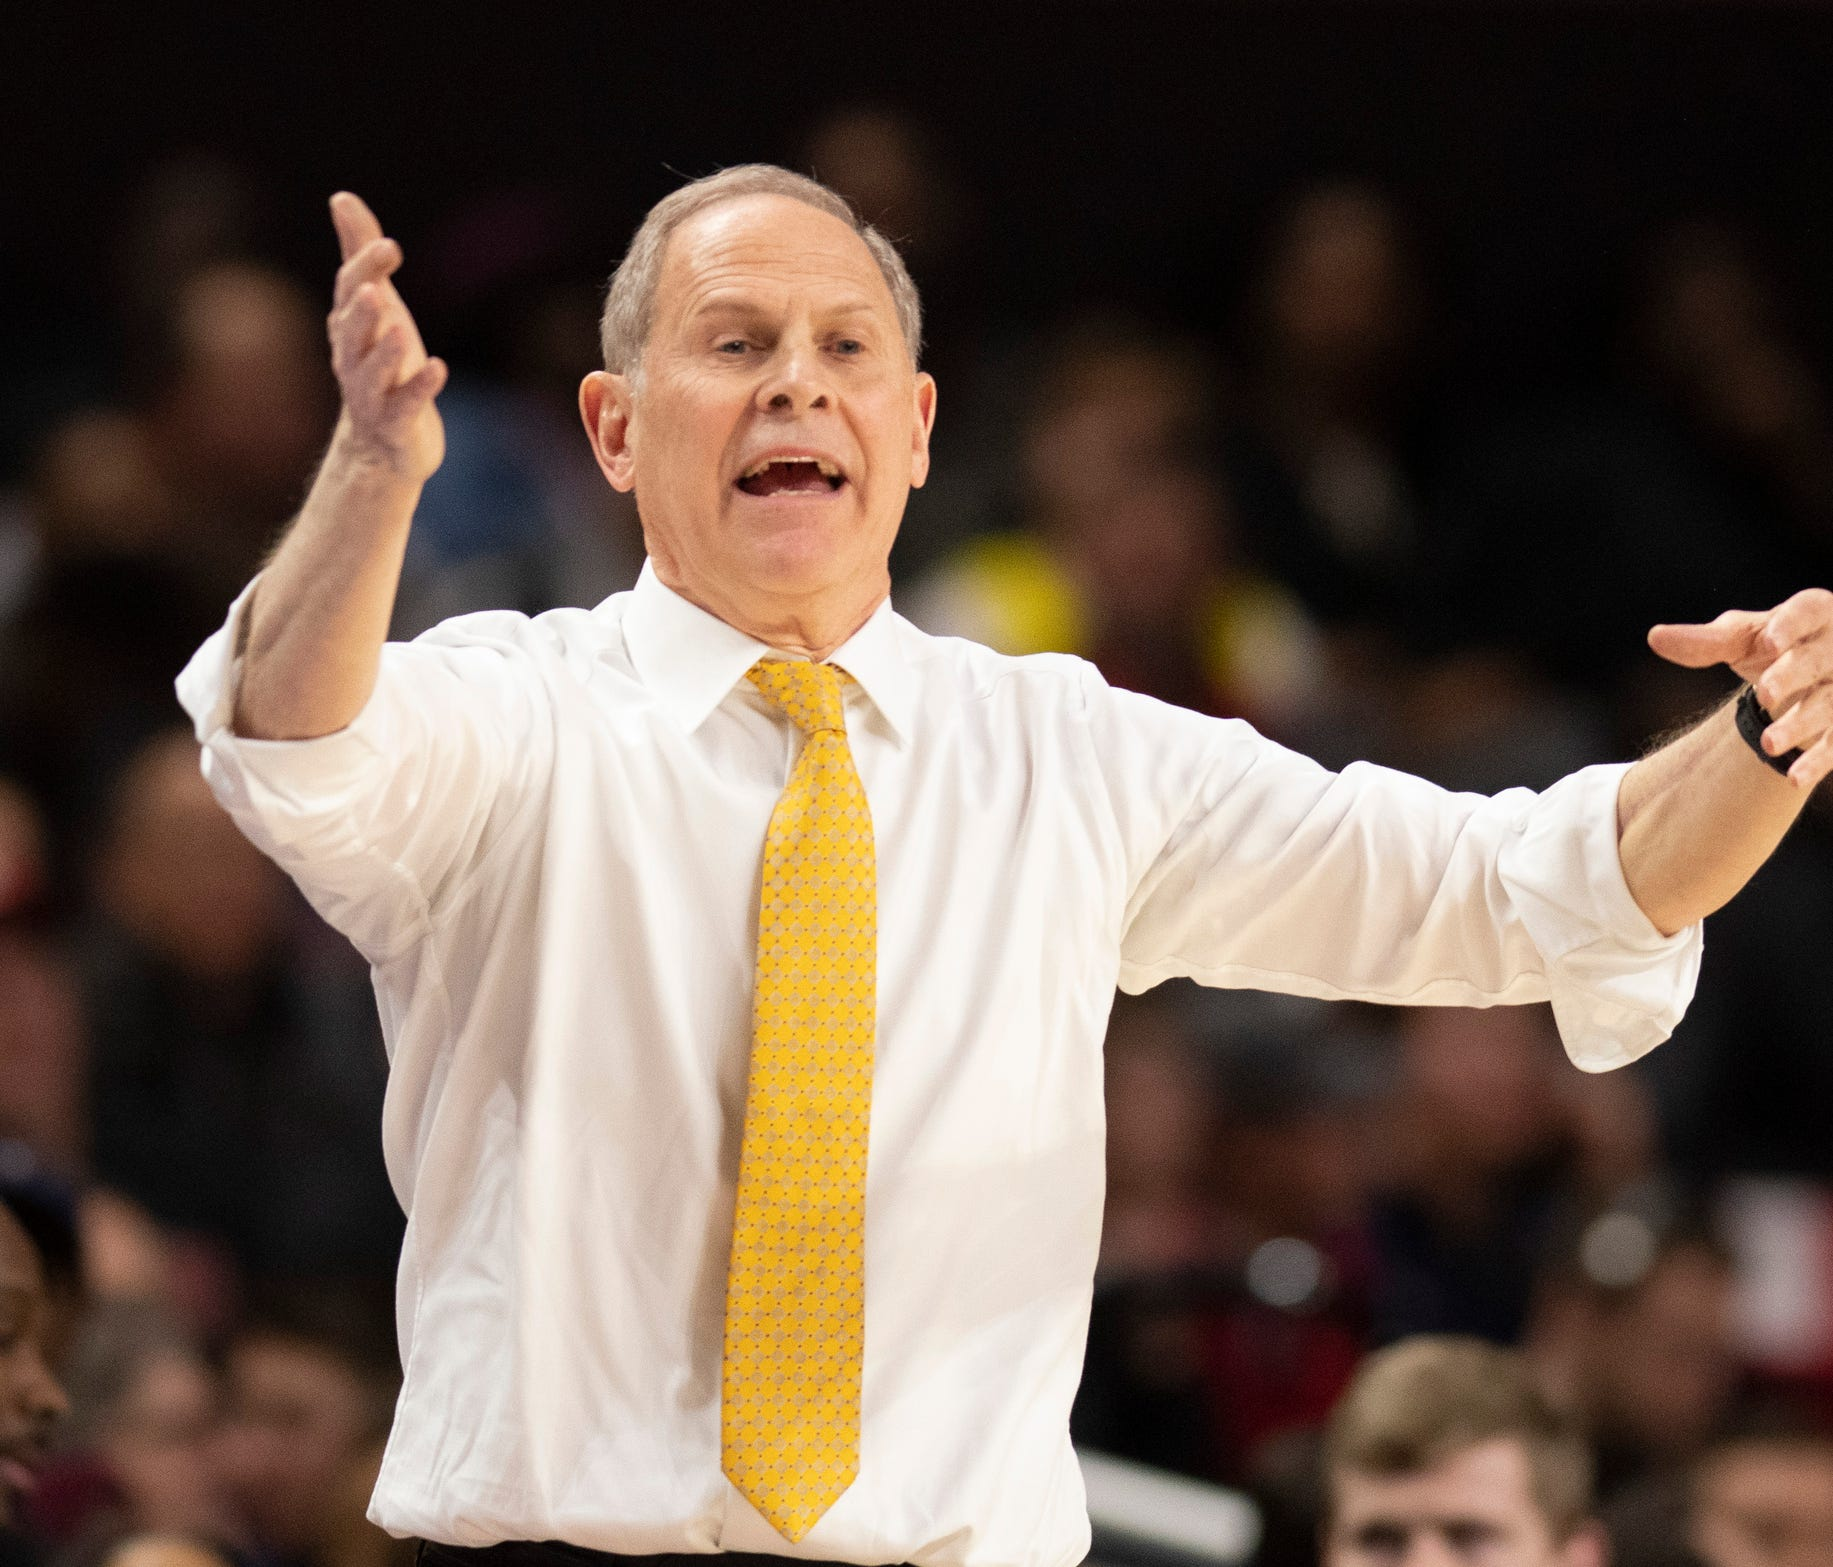 Michigan coach John Beilein reacts to a call during the first half on Sunday, March 3, 2019, in College Park, Md.